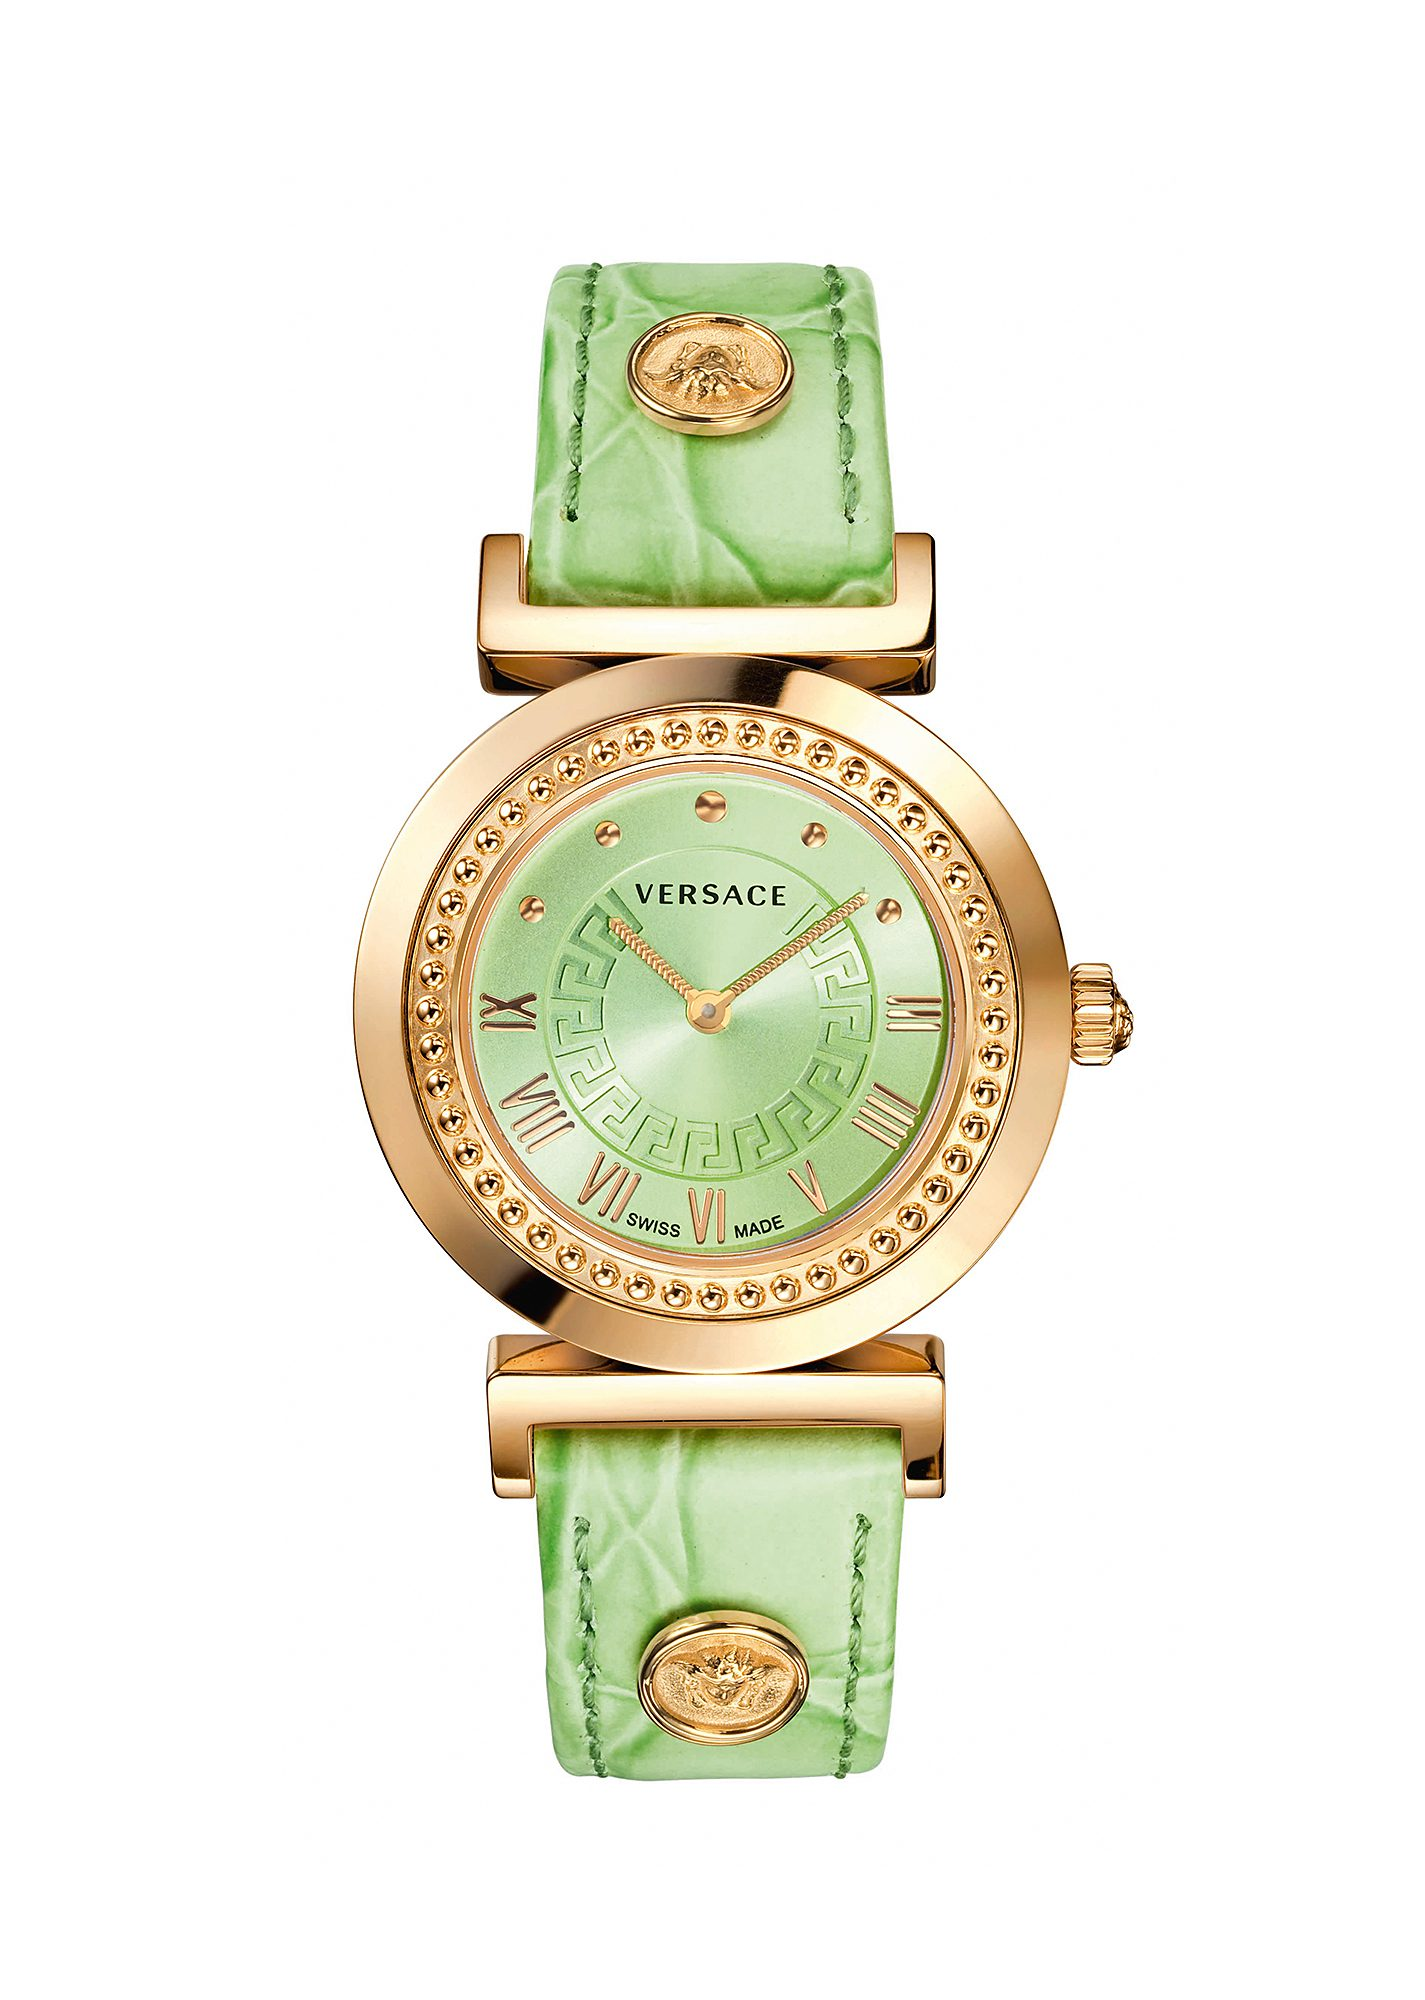 The World of Versace Watches